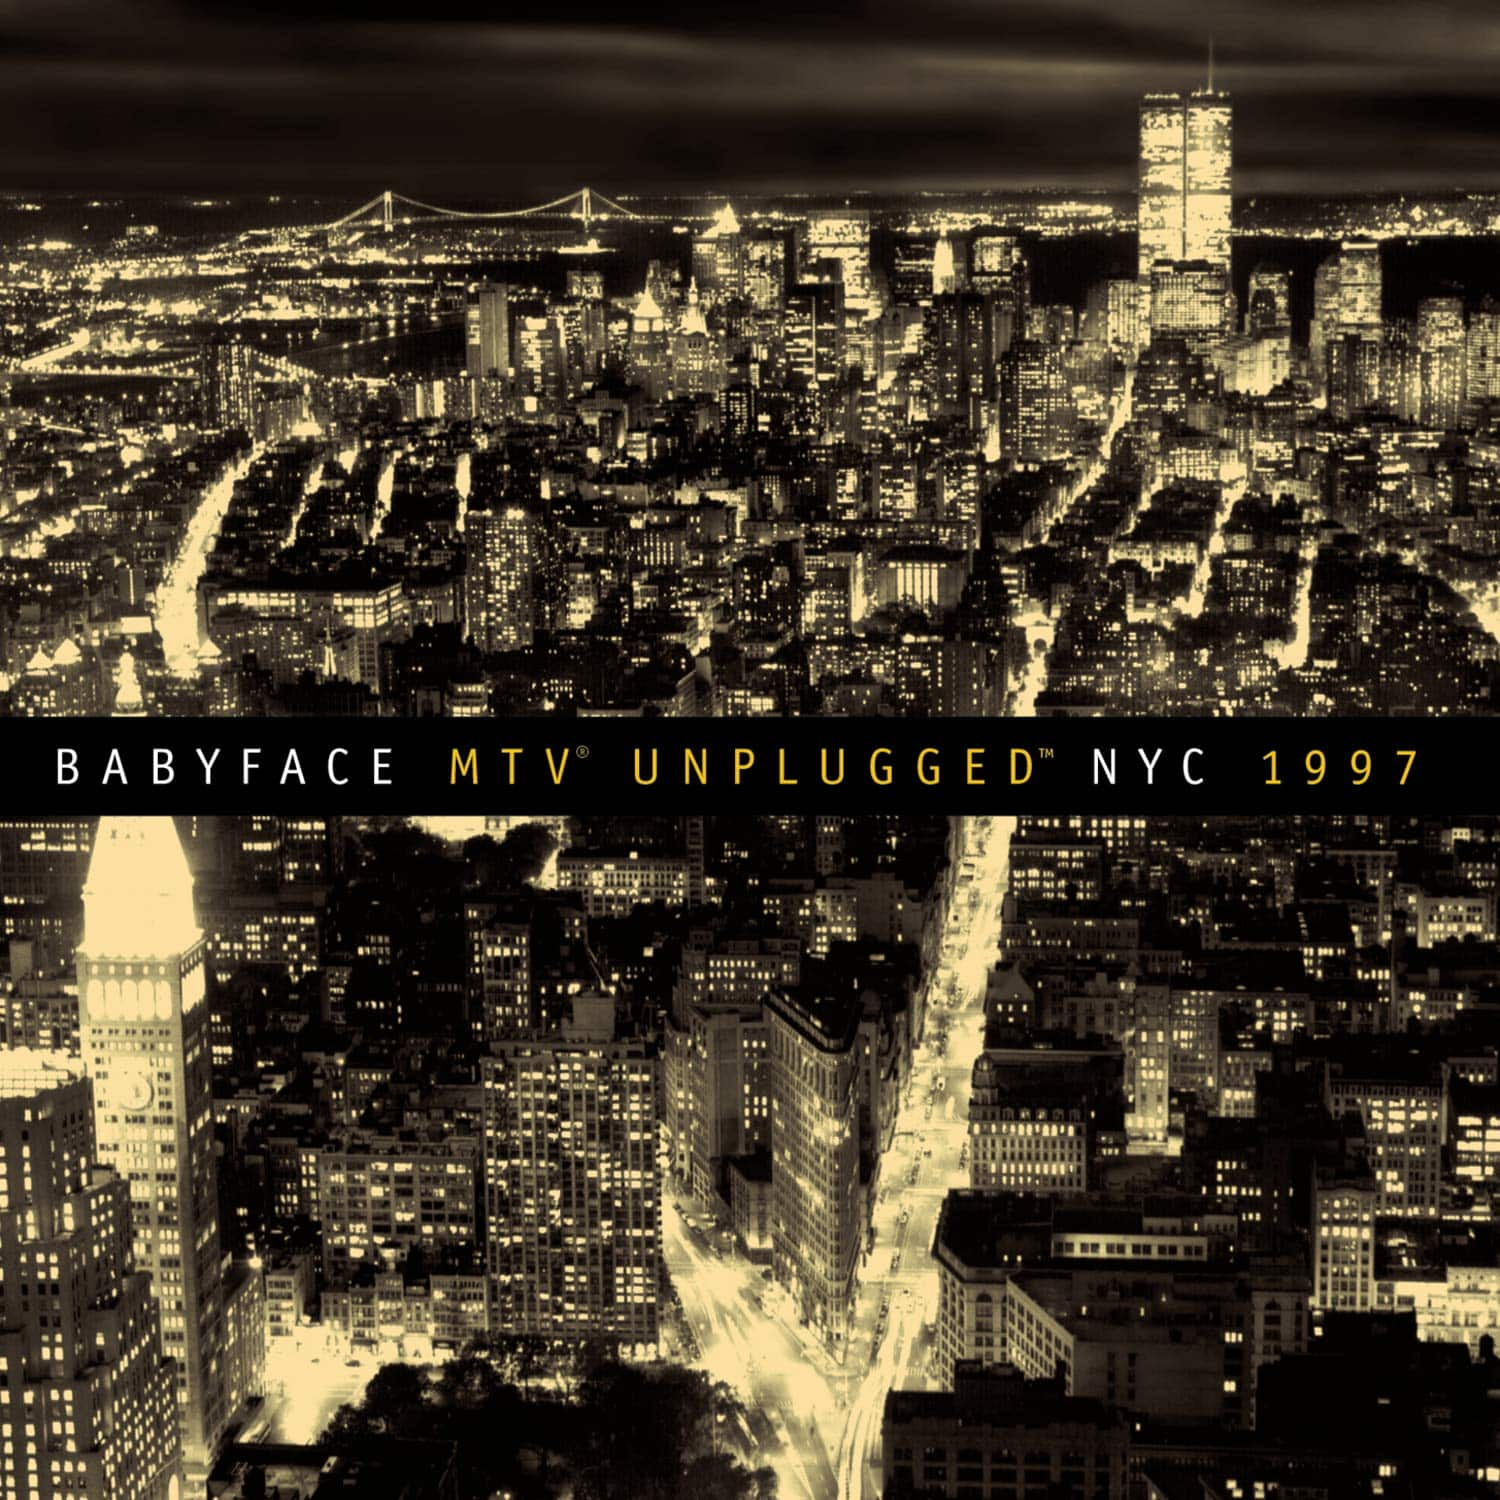 Babyface MTV Unplugged (1997)